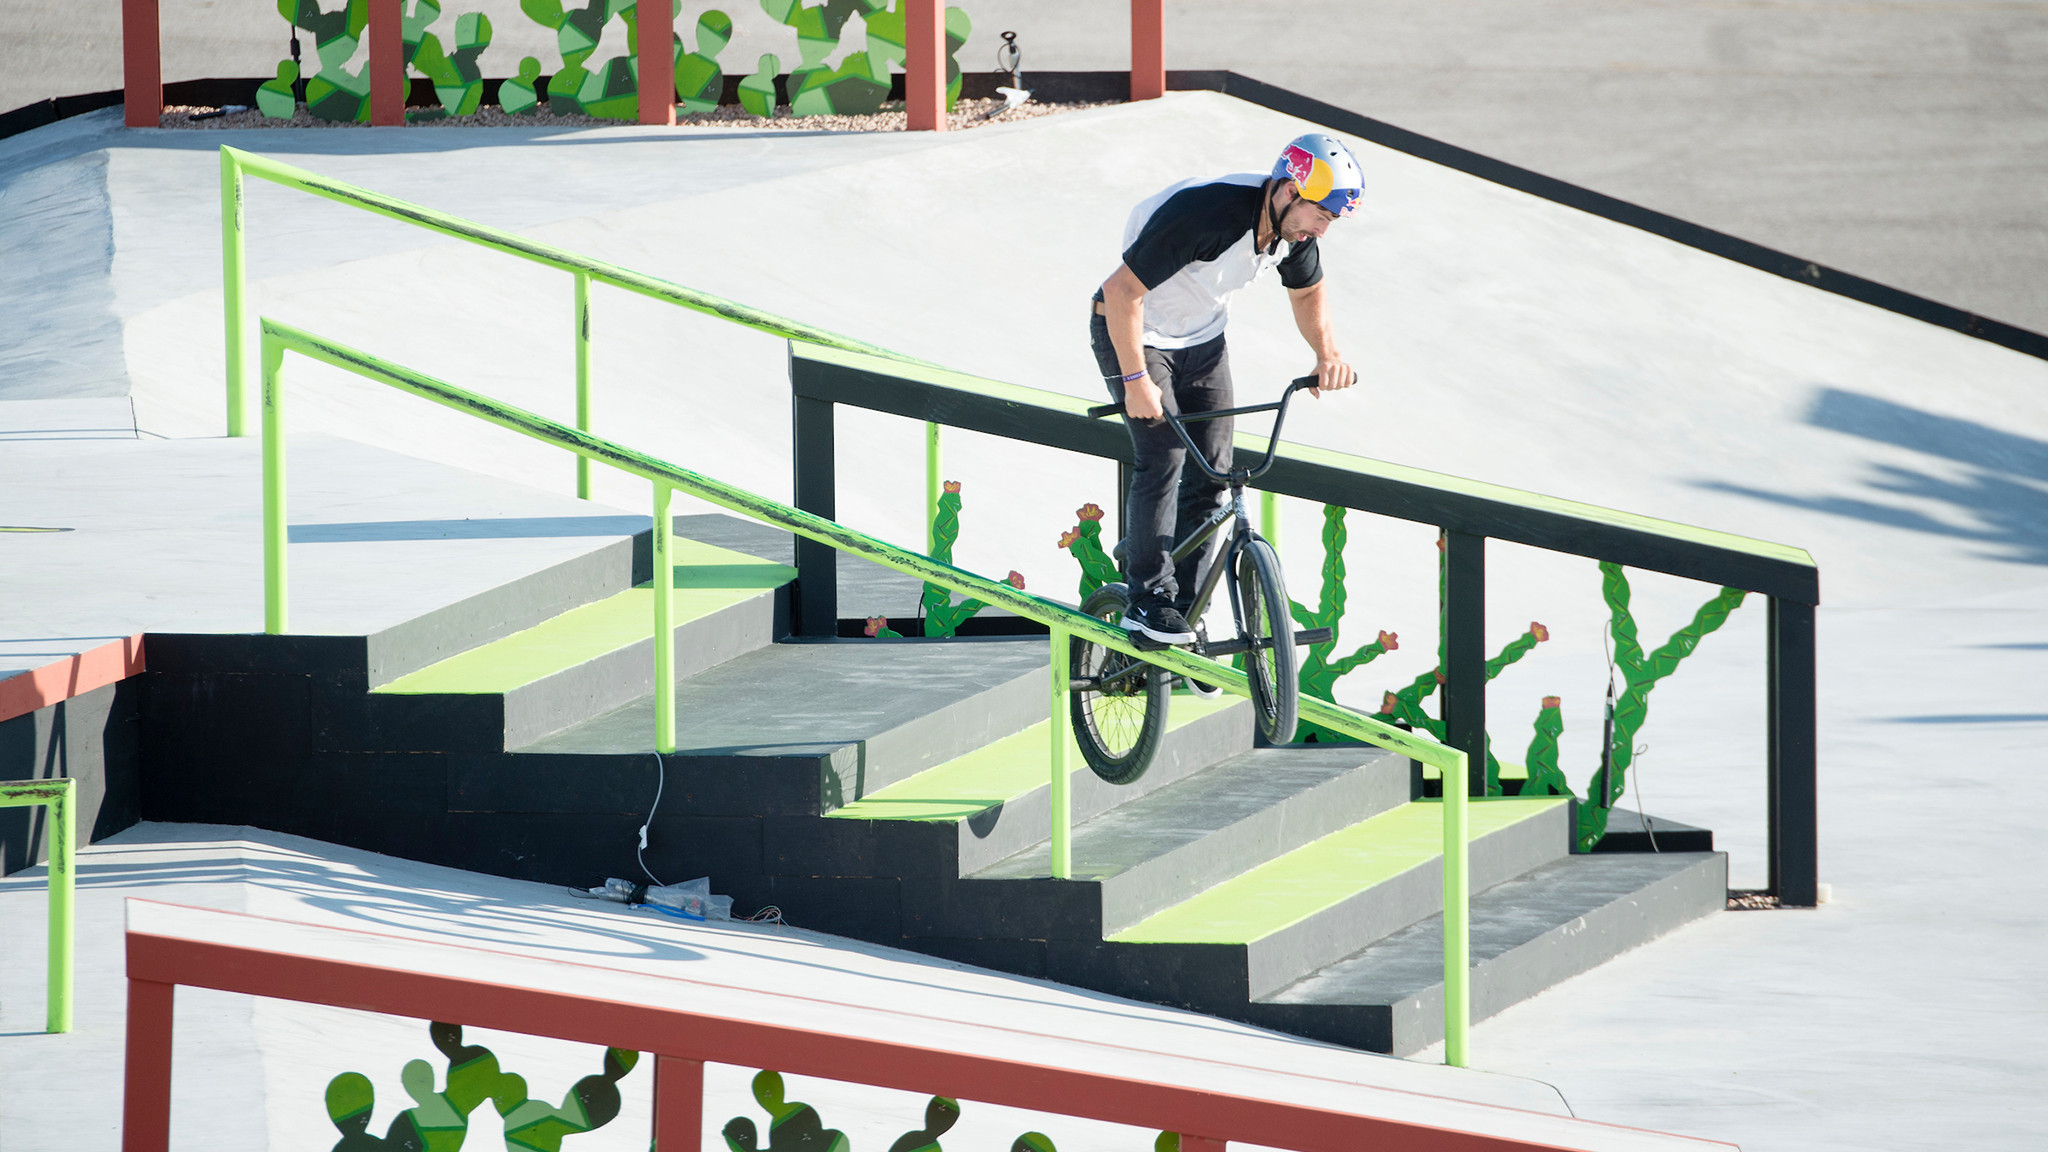 BMX Street returns to X Games